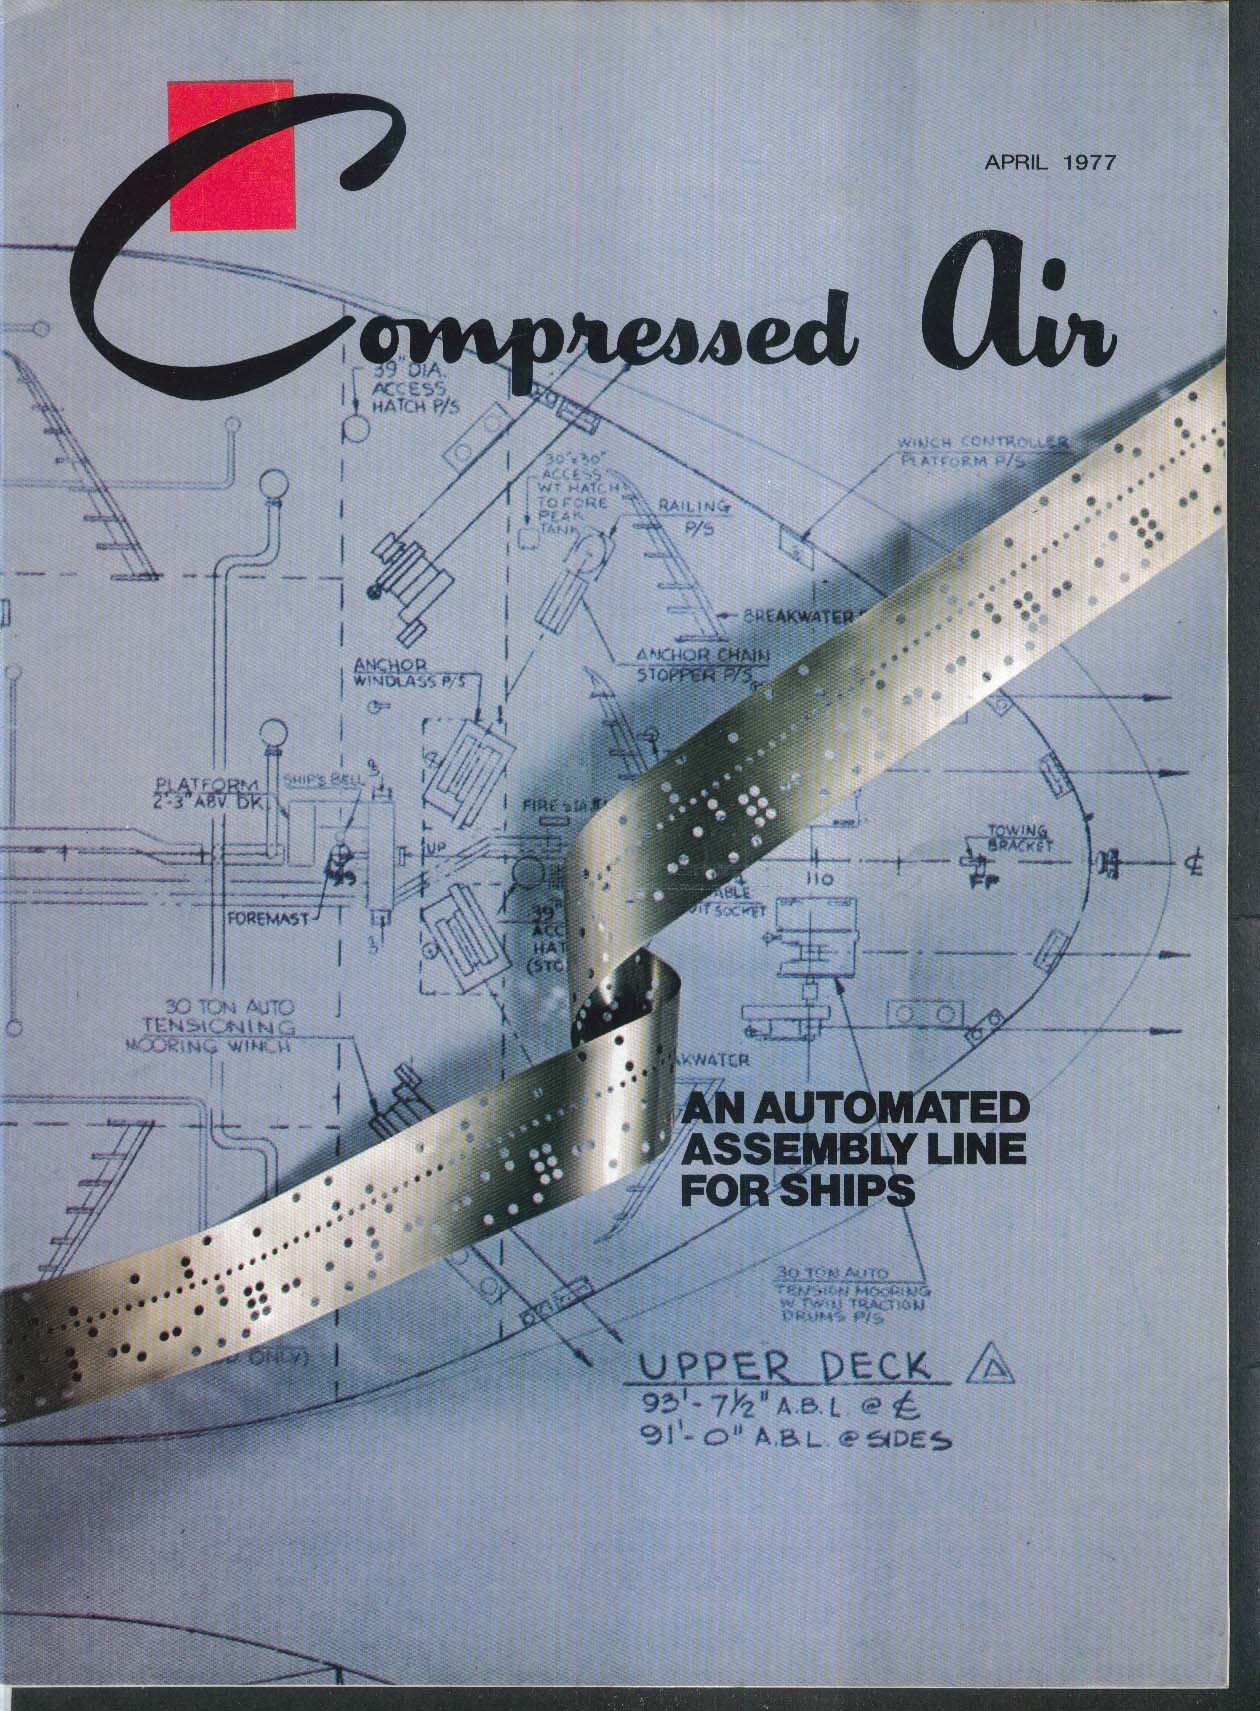 COMPRESSED AIR Automated Assembly Line for Ships ++ 4 1977